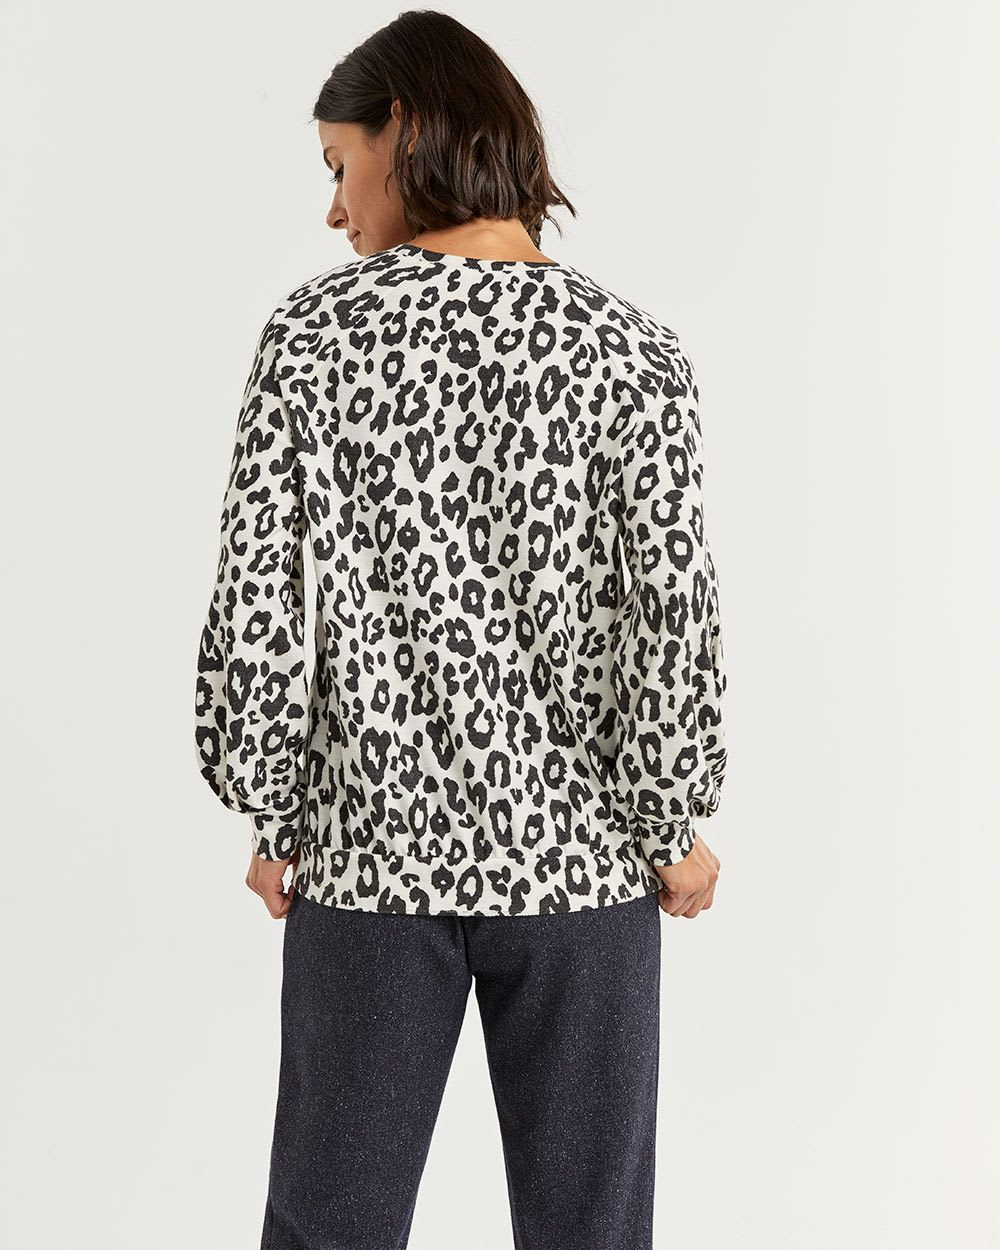 Leopard Print French Terry Sweater